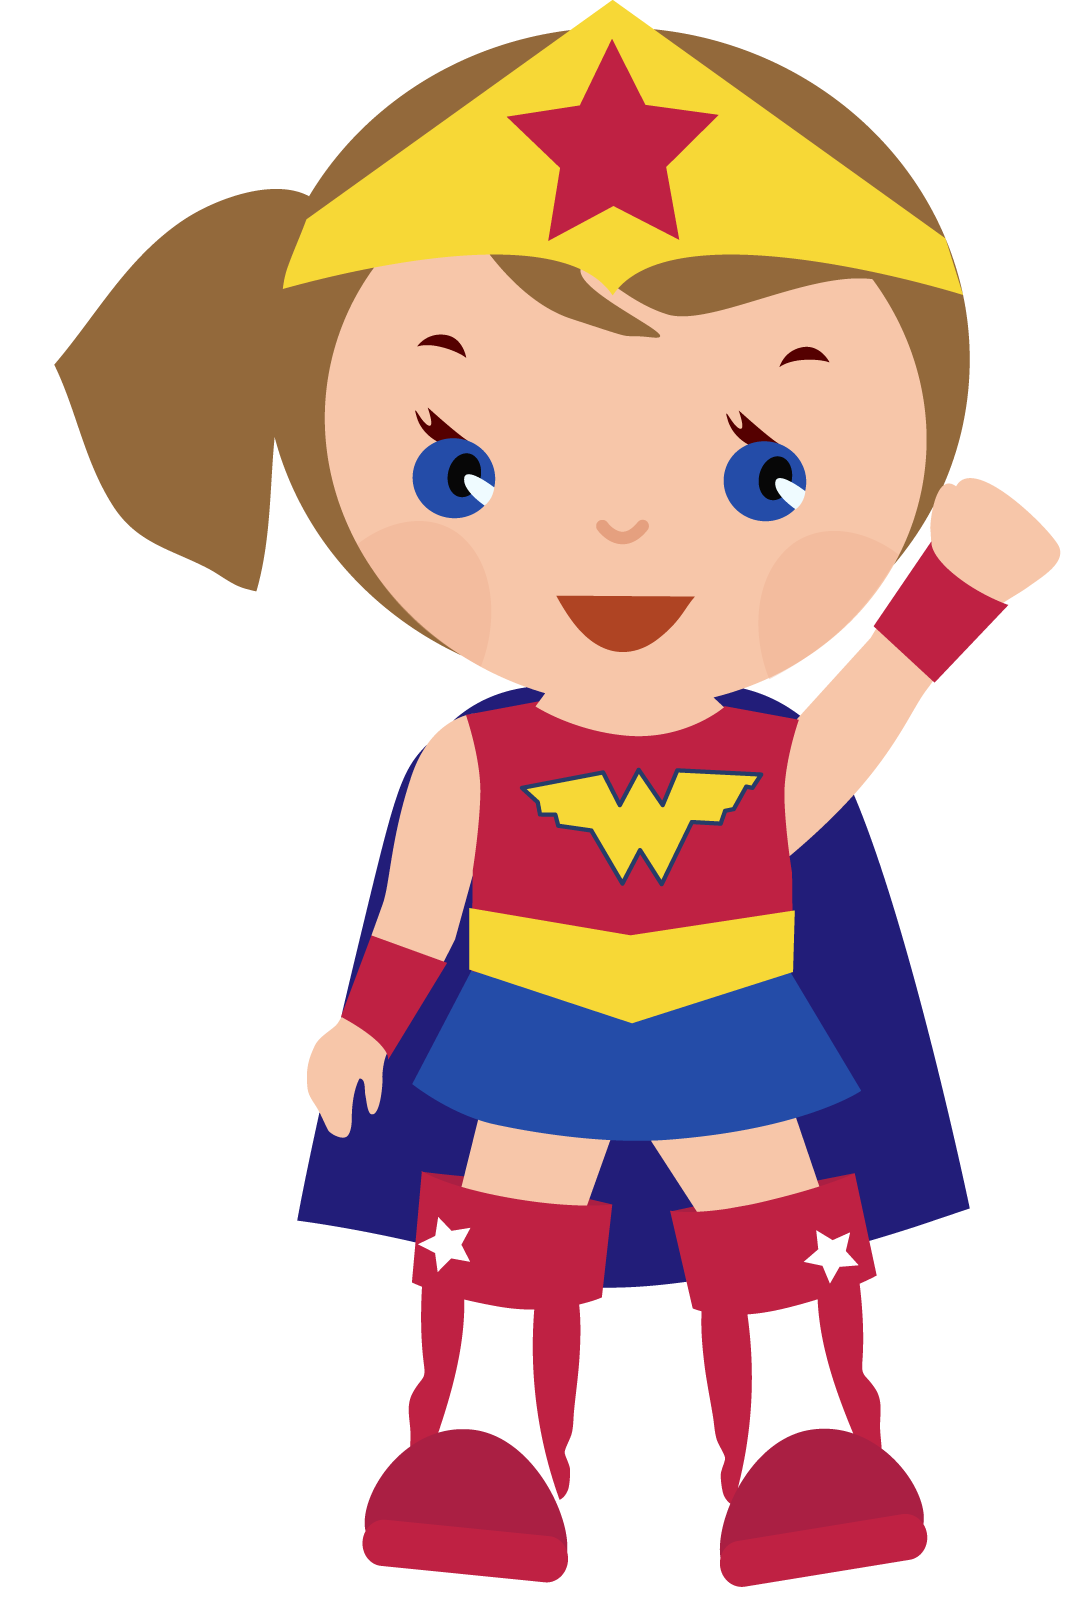 Book character dress up clipart jpg library Superhero girl super hero clip art free clipart images clipartcow ... jpg library